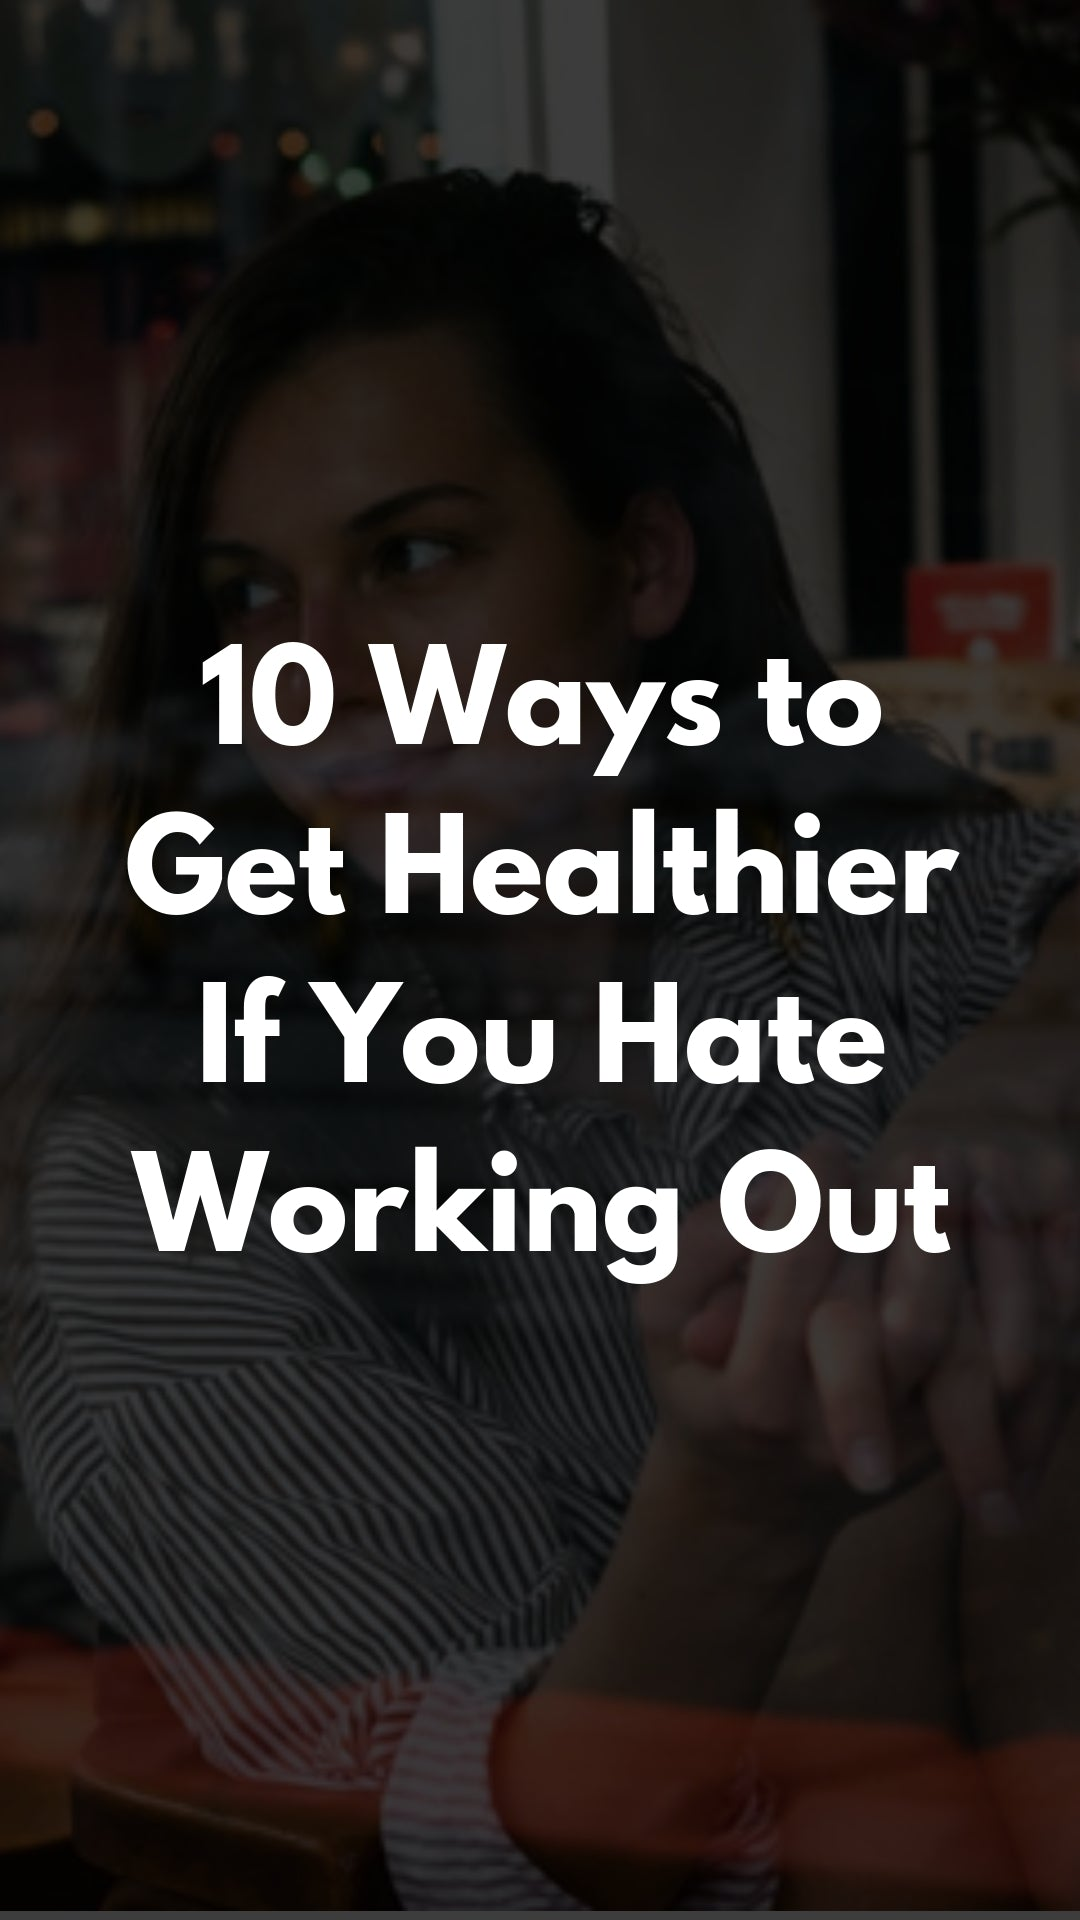 10 Ways to Get Healthier If You Hate Working Out #fitness